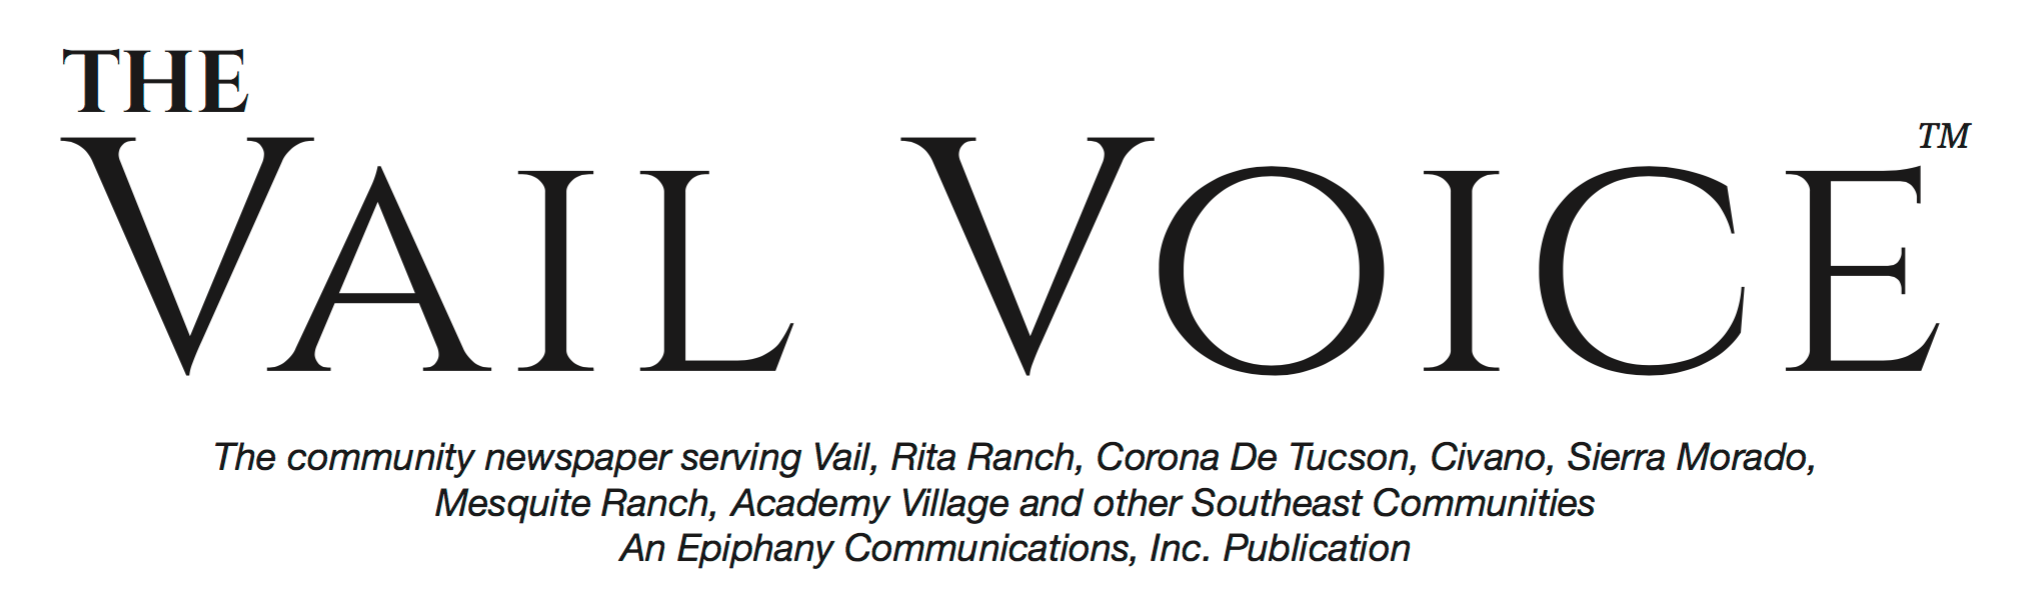 The Vail Voice